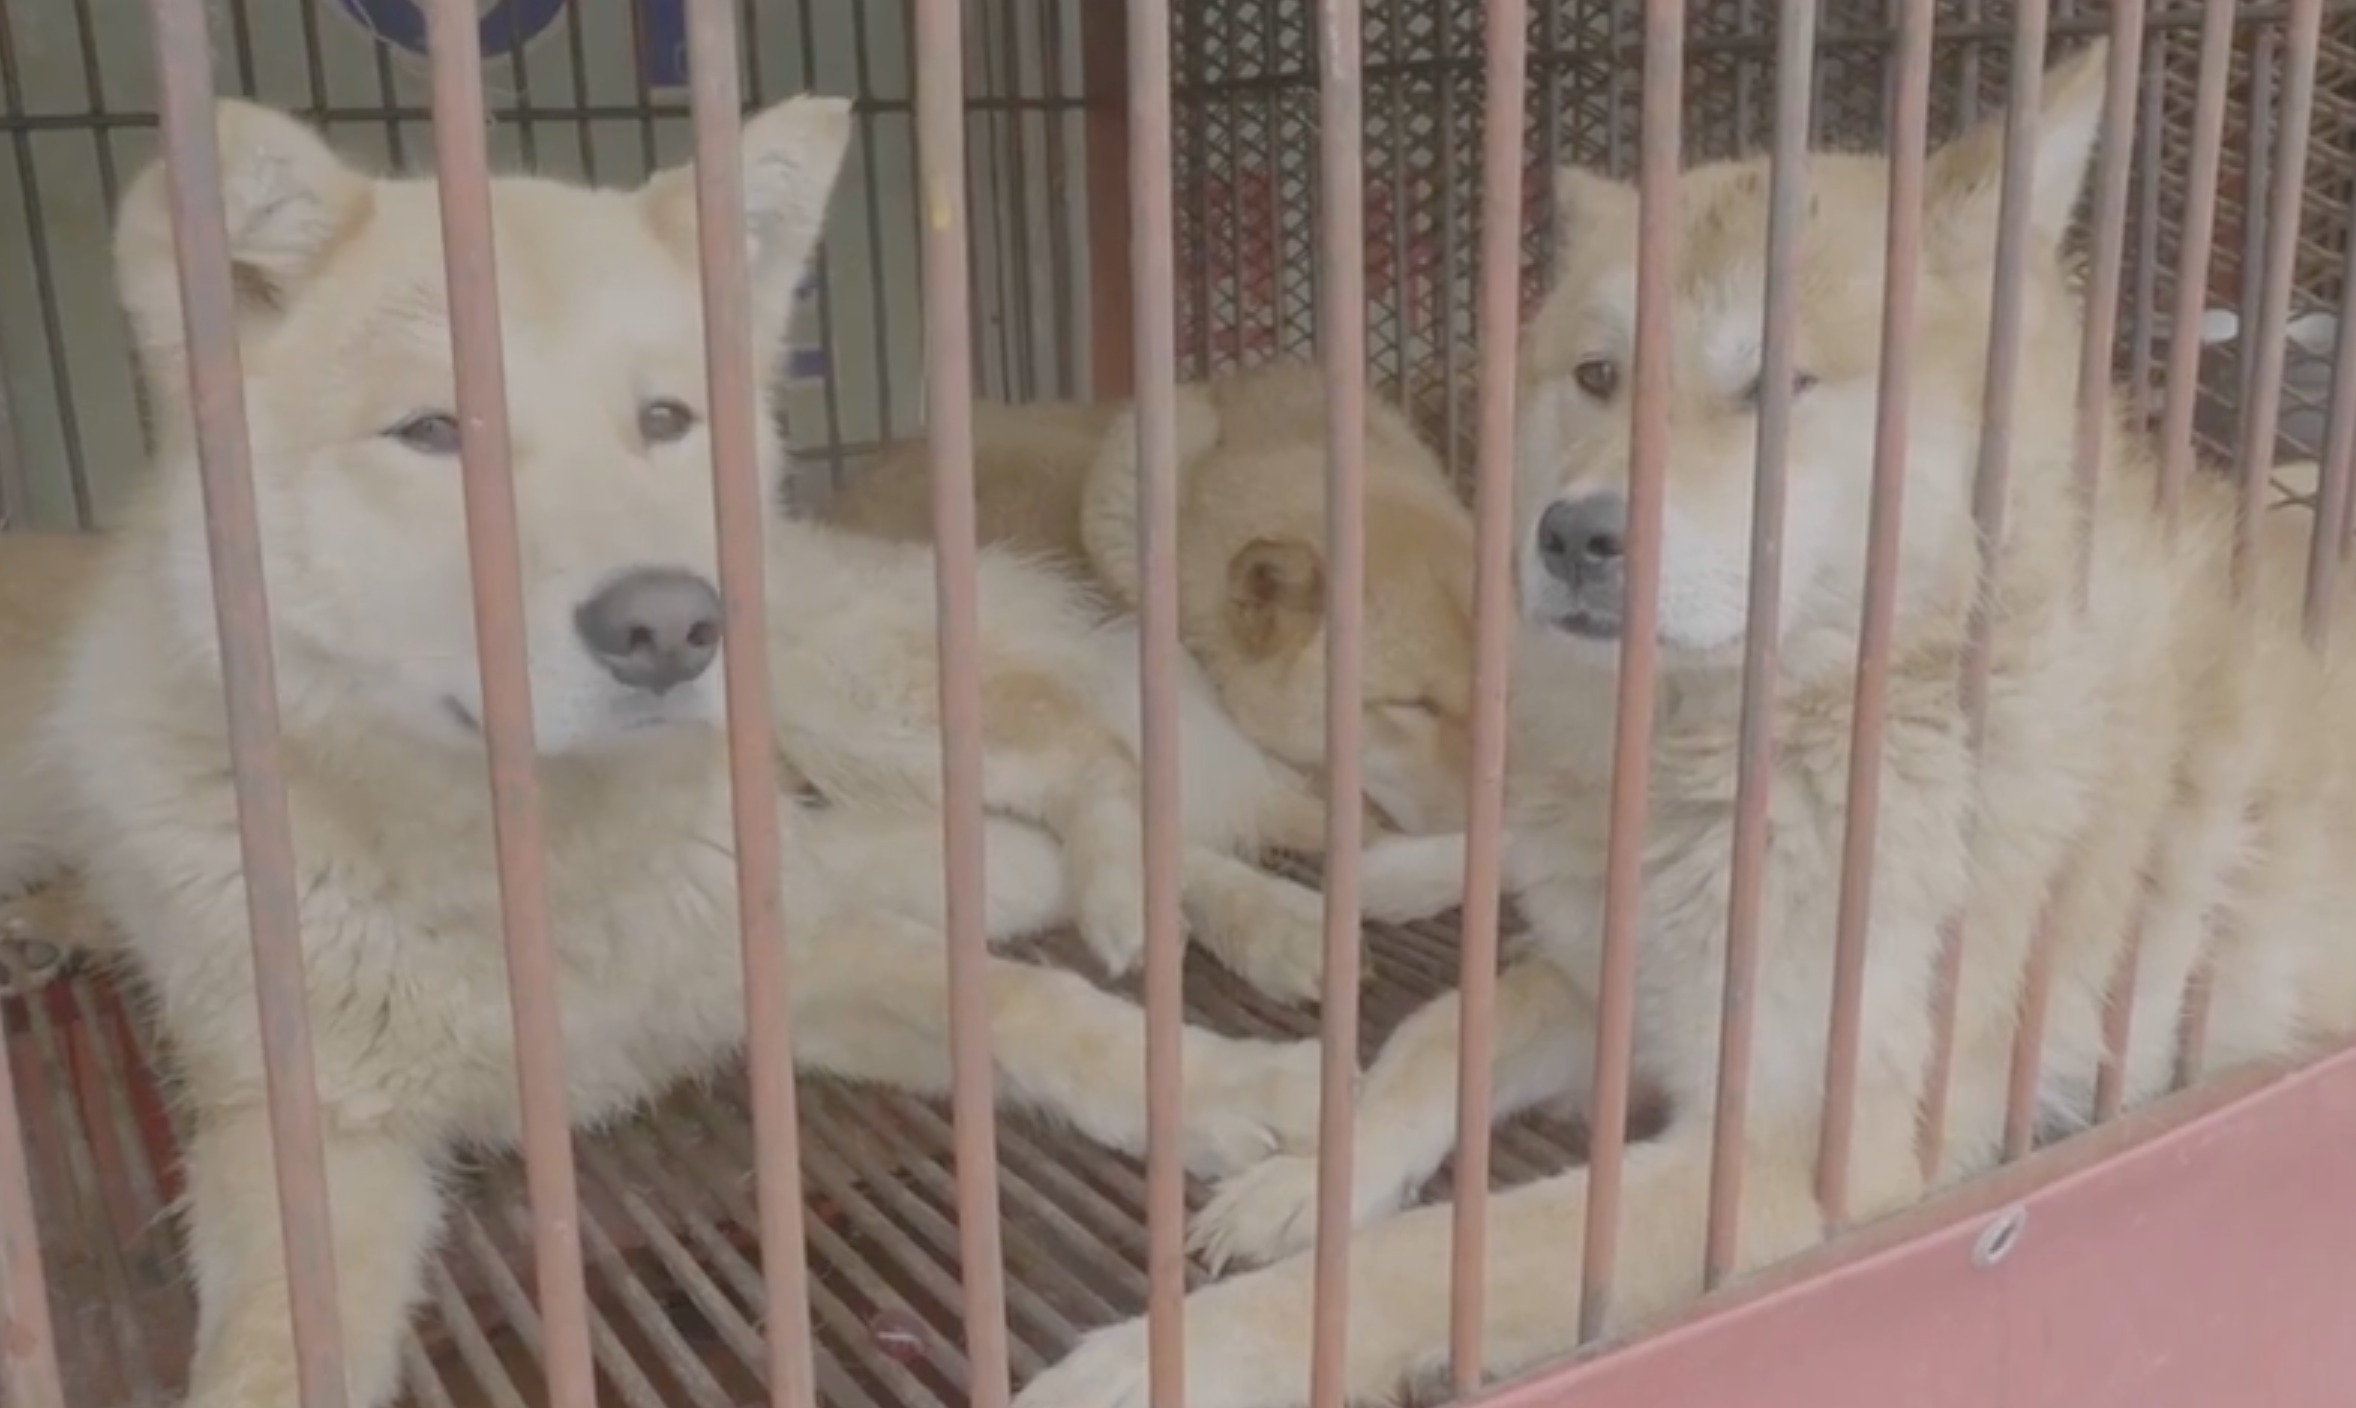 Dogs who will be killed in the South Korean dog meat trade